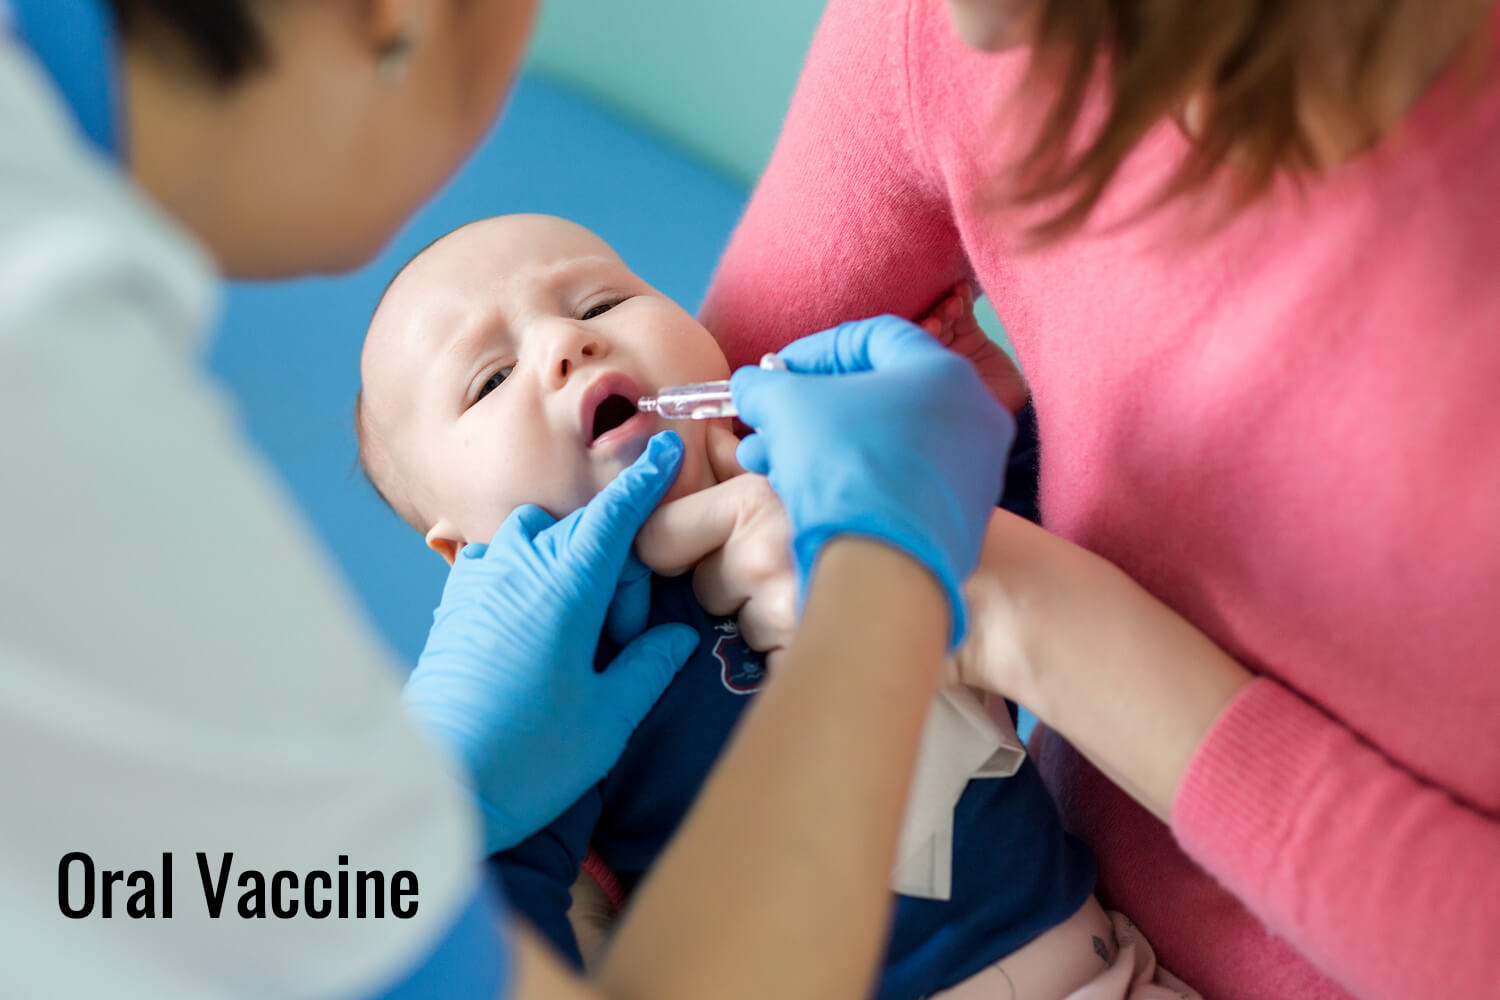 baby getting oral vaccine